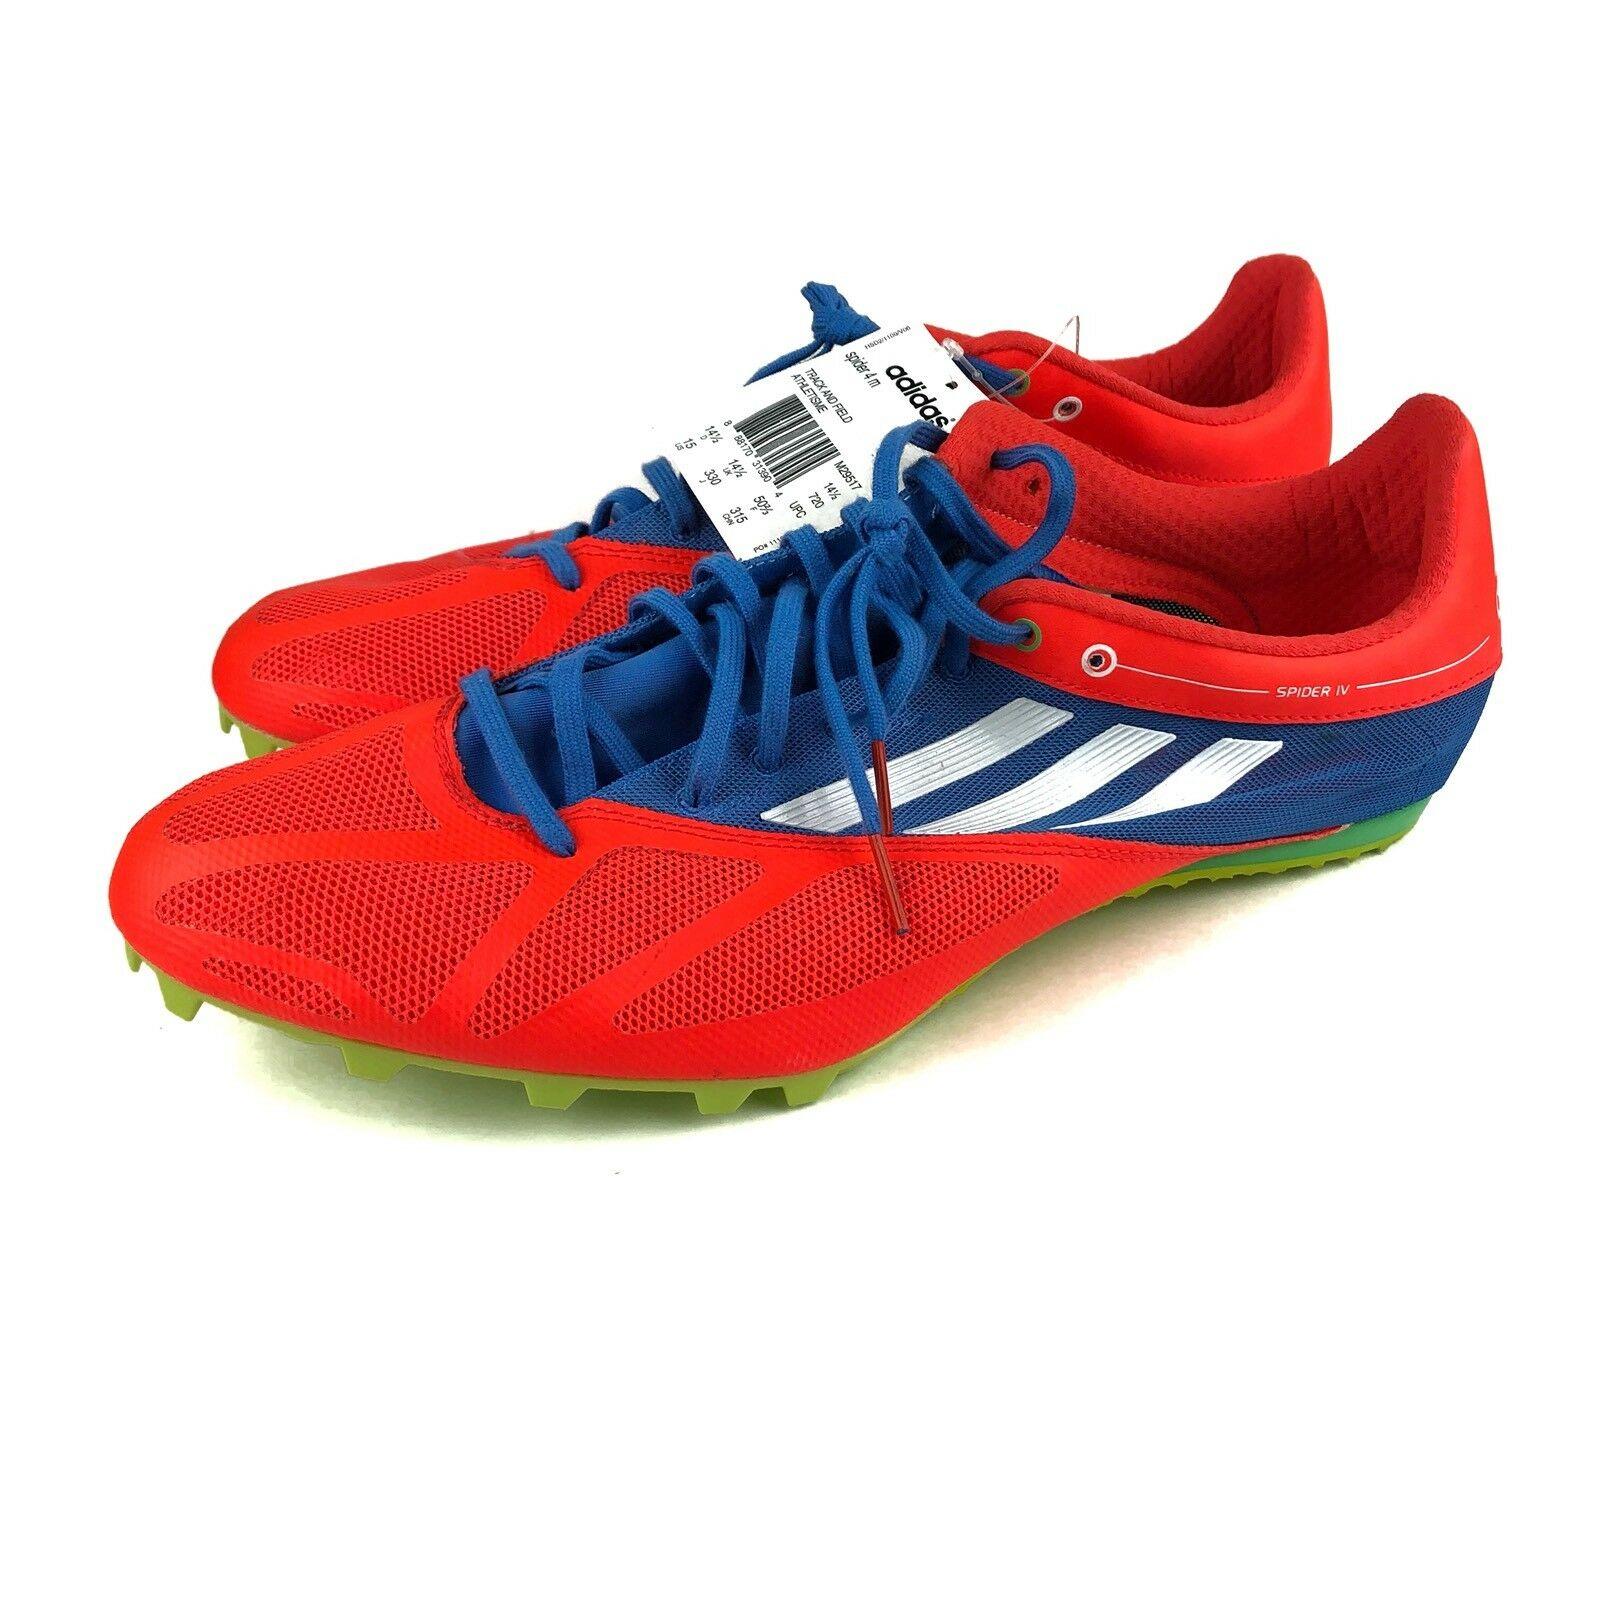 NEW Adidas Spider Spikes Running Shoes 4 M Orange Blue Green Track And Field 15 Seasonal price cuts, discount benefits